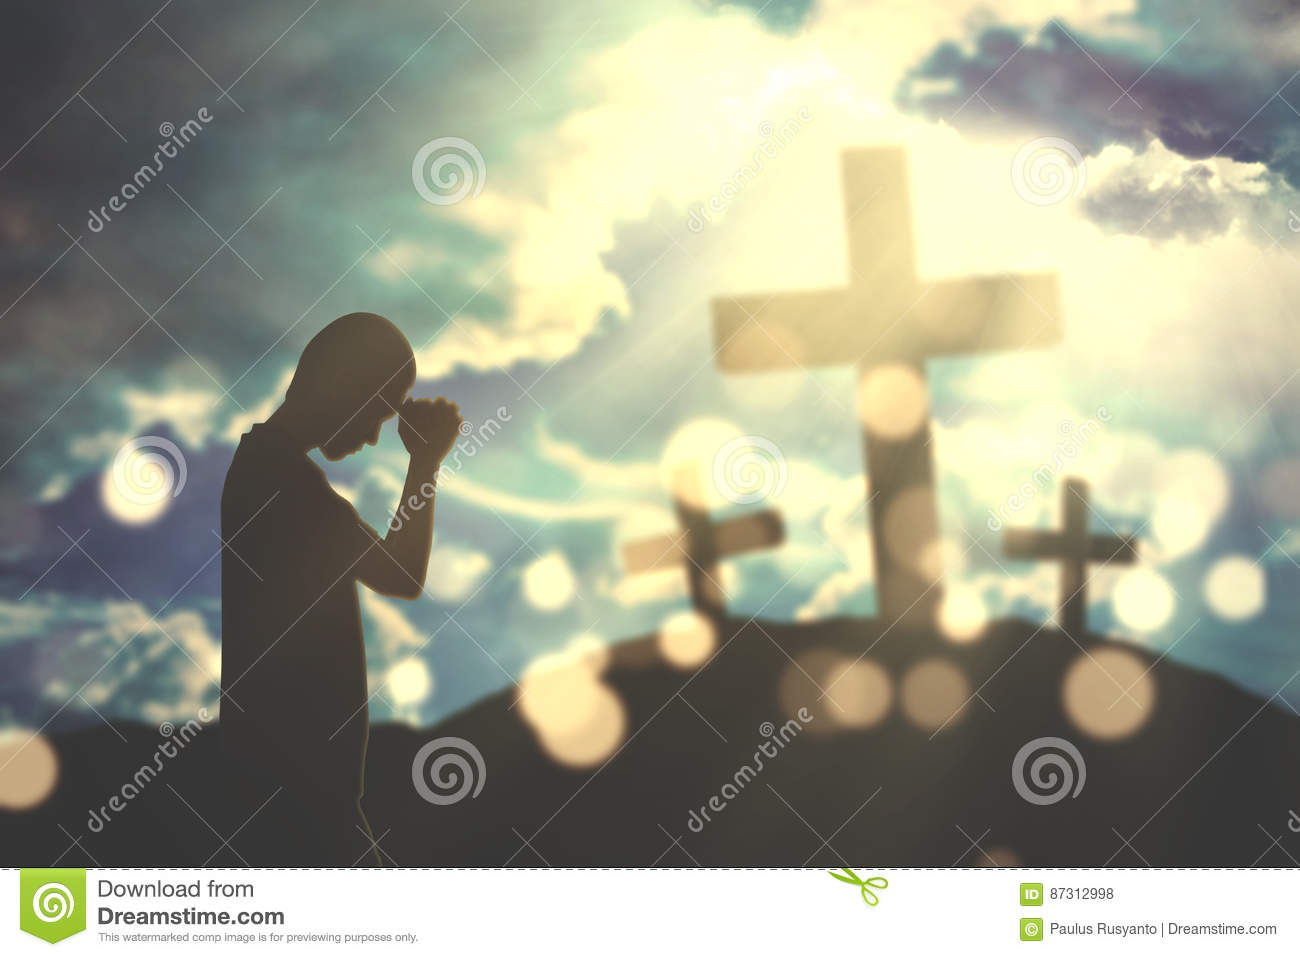 Christian man worships with cross signs